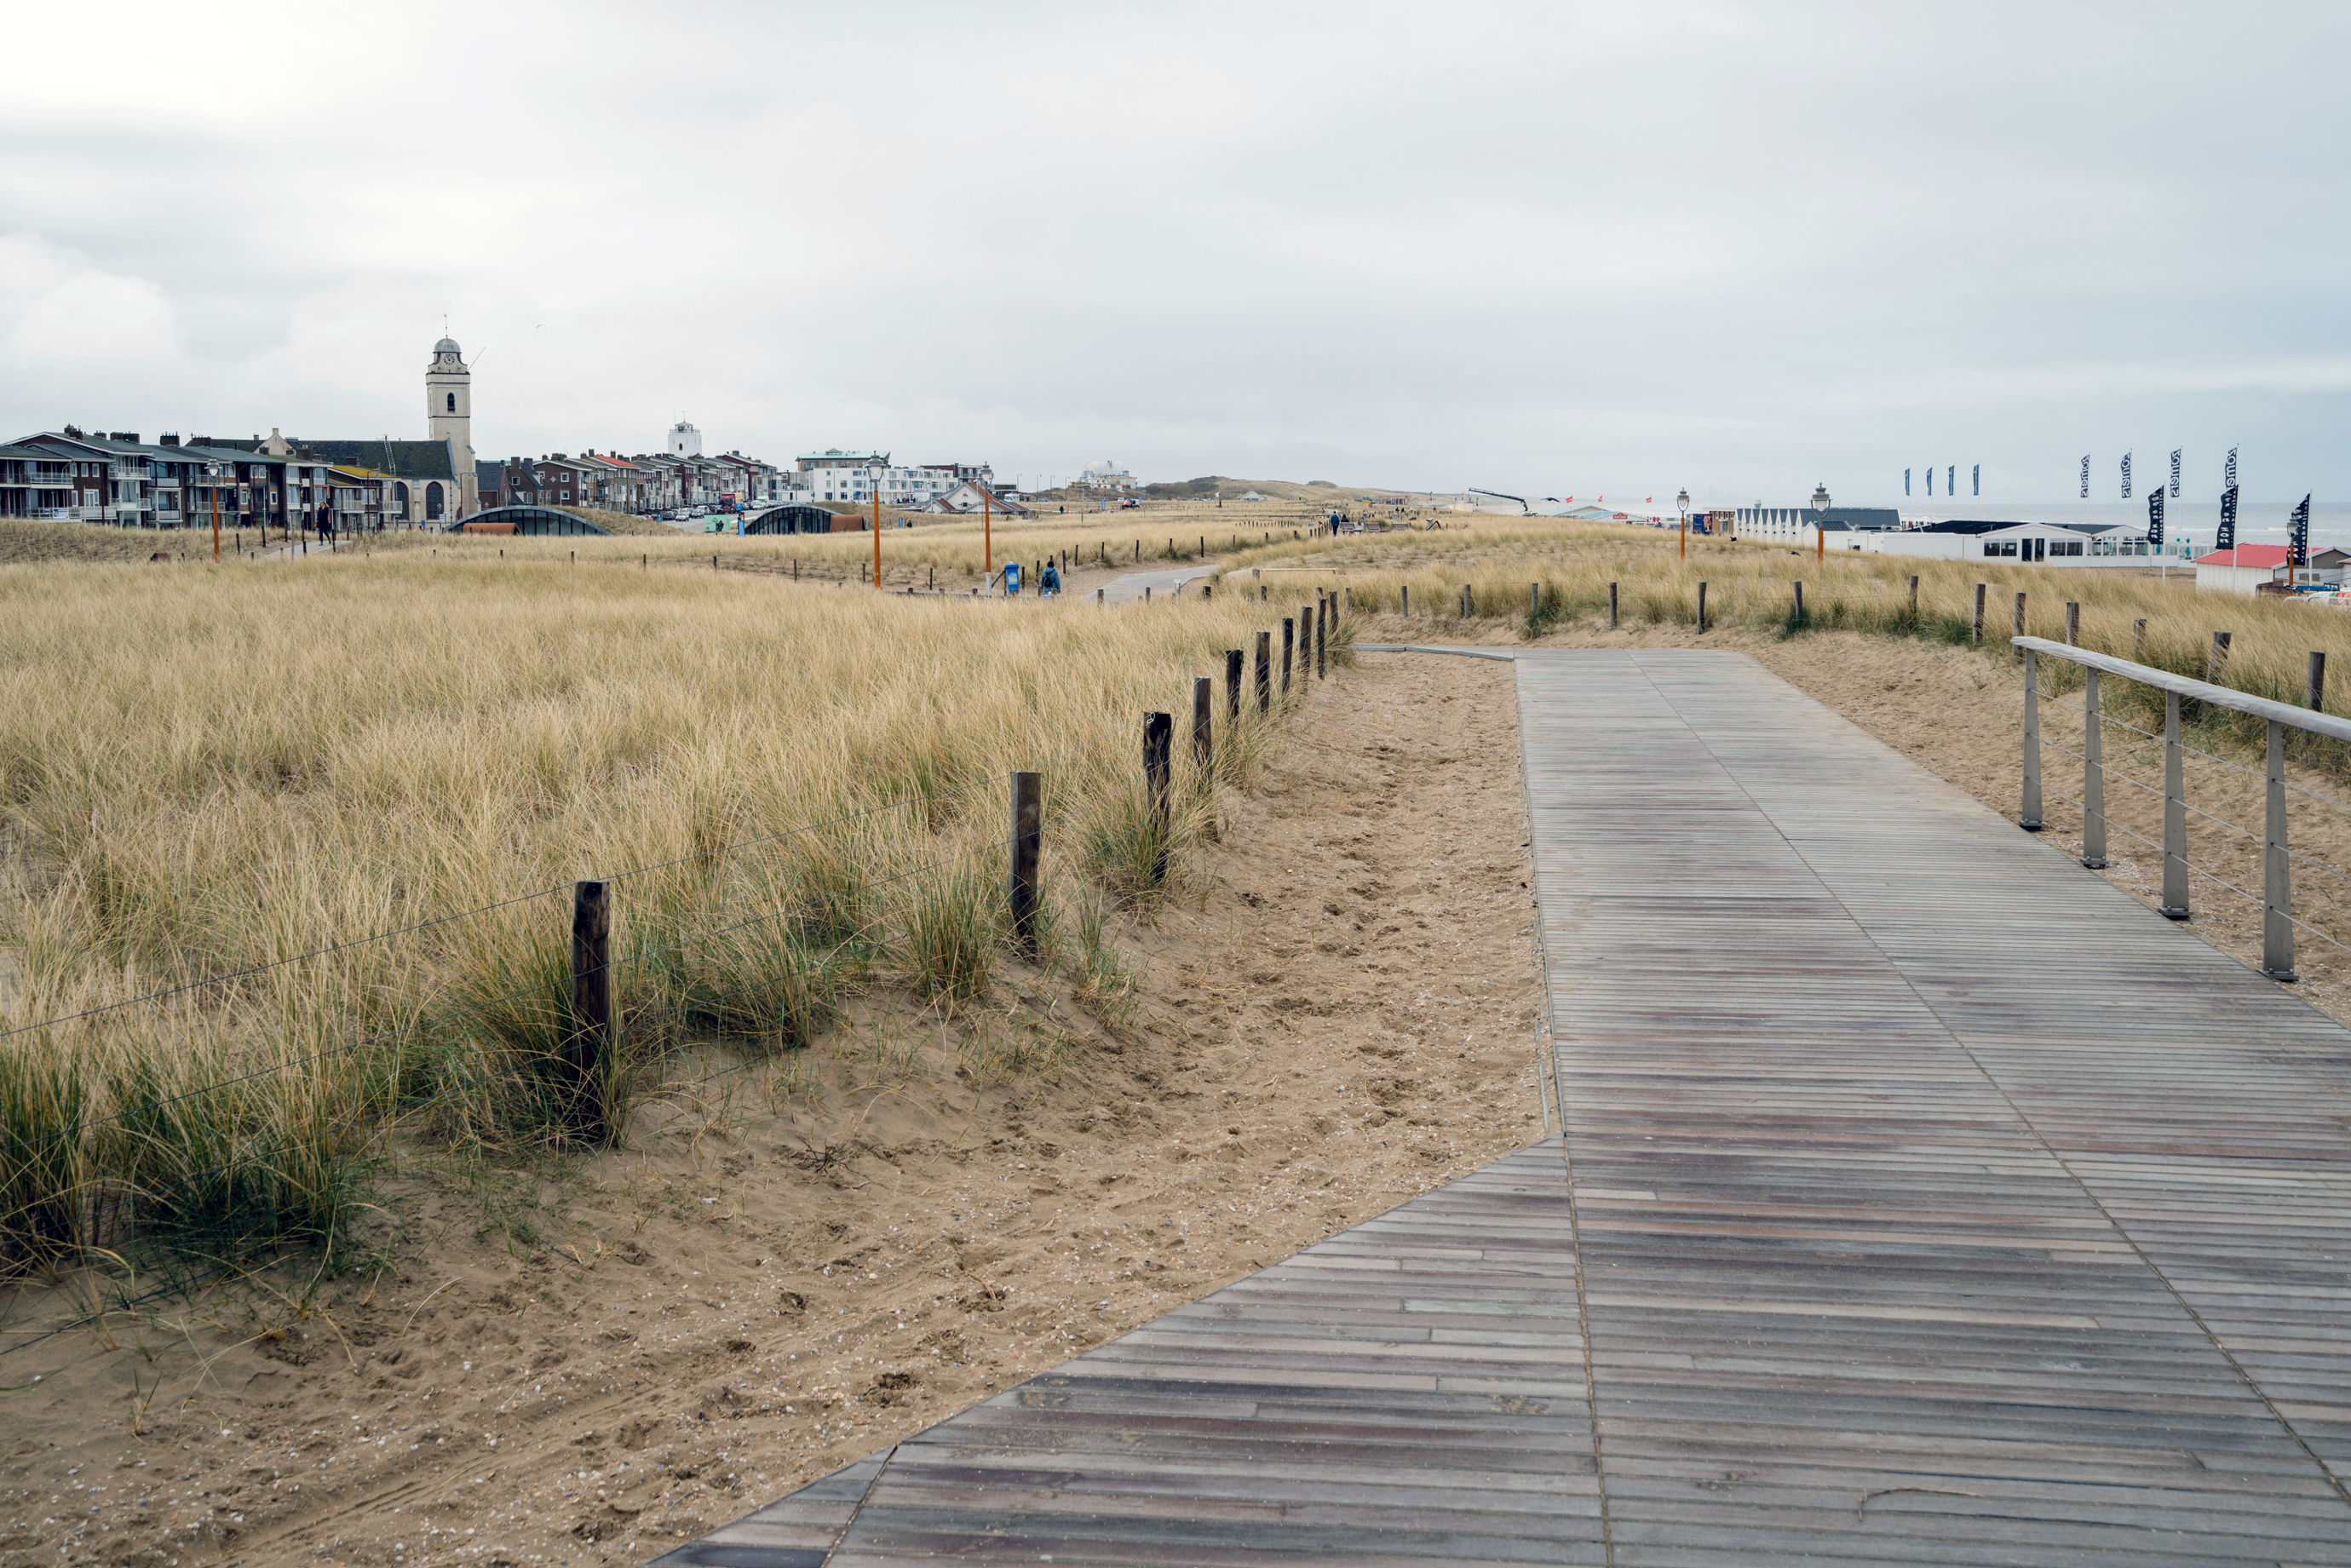 A walkway above the Katwijk multiuse dike, with the ocean to the right. A parking garage is beneath the dunes.